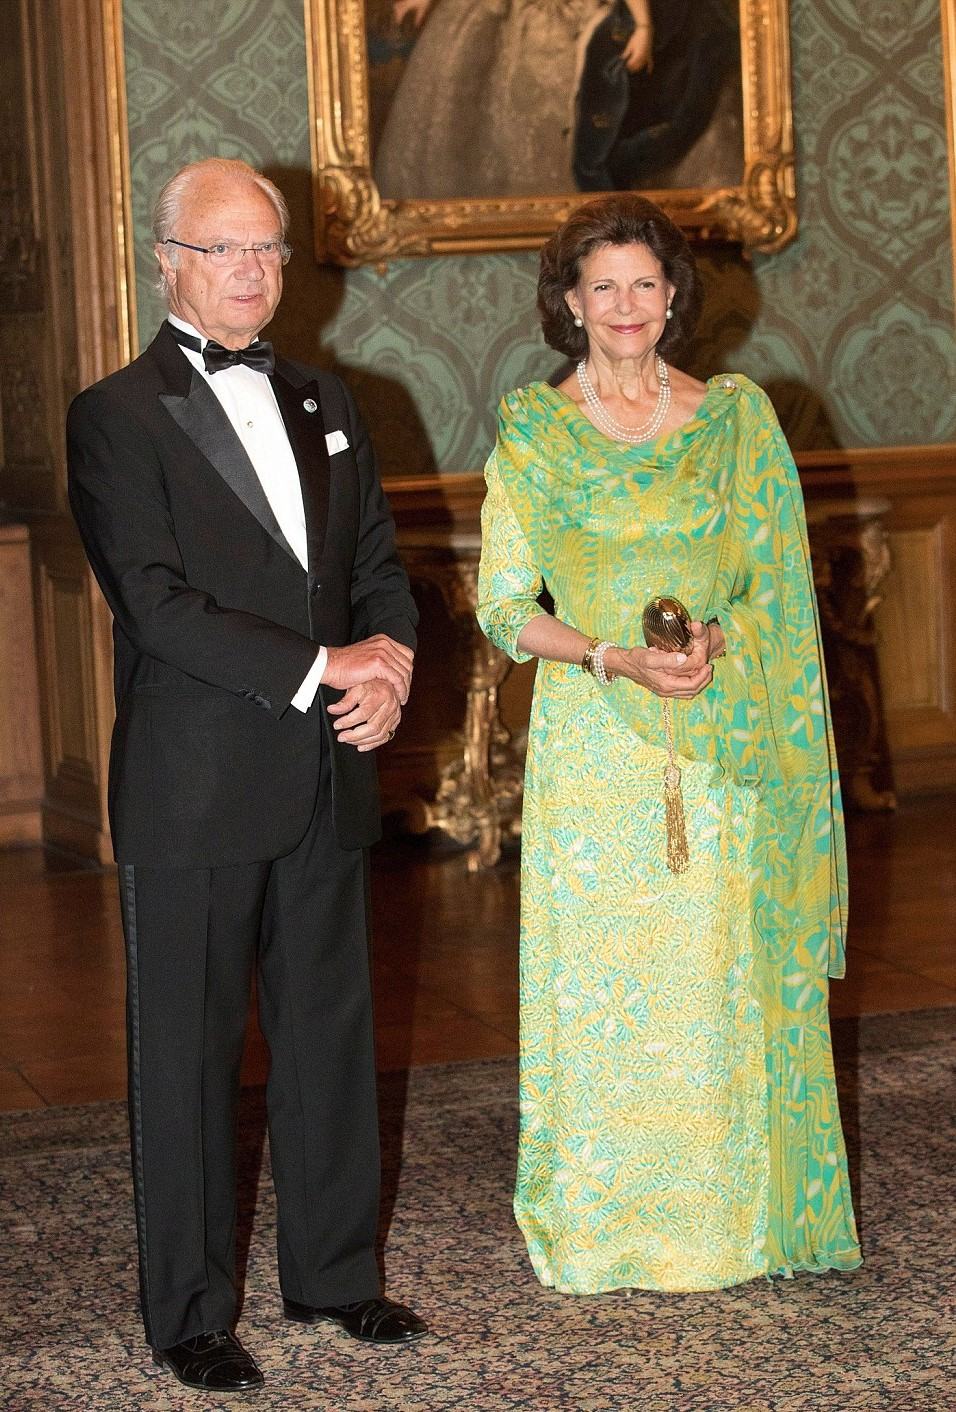 Royal Family Around the World: Sweden's King Carl XVI Gustaf and